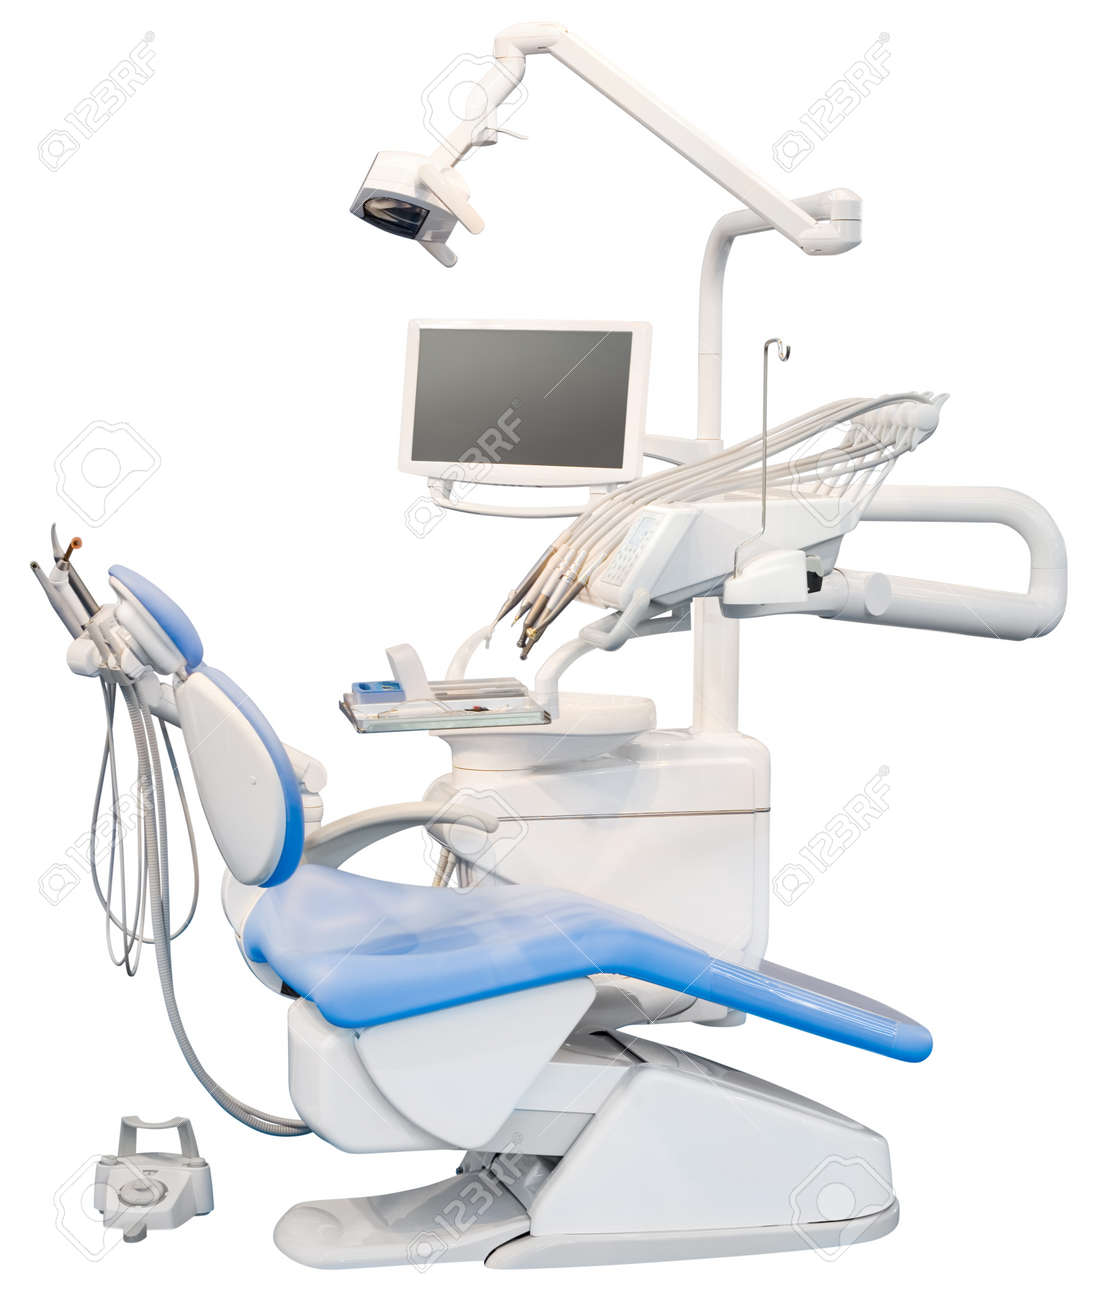 Blue Dental Chair Isolated with Clipping Path Standard-Bild - 15012853